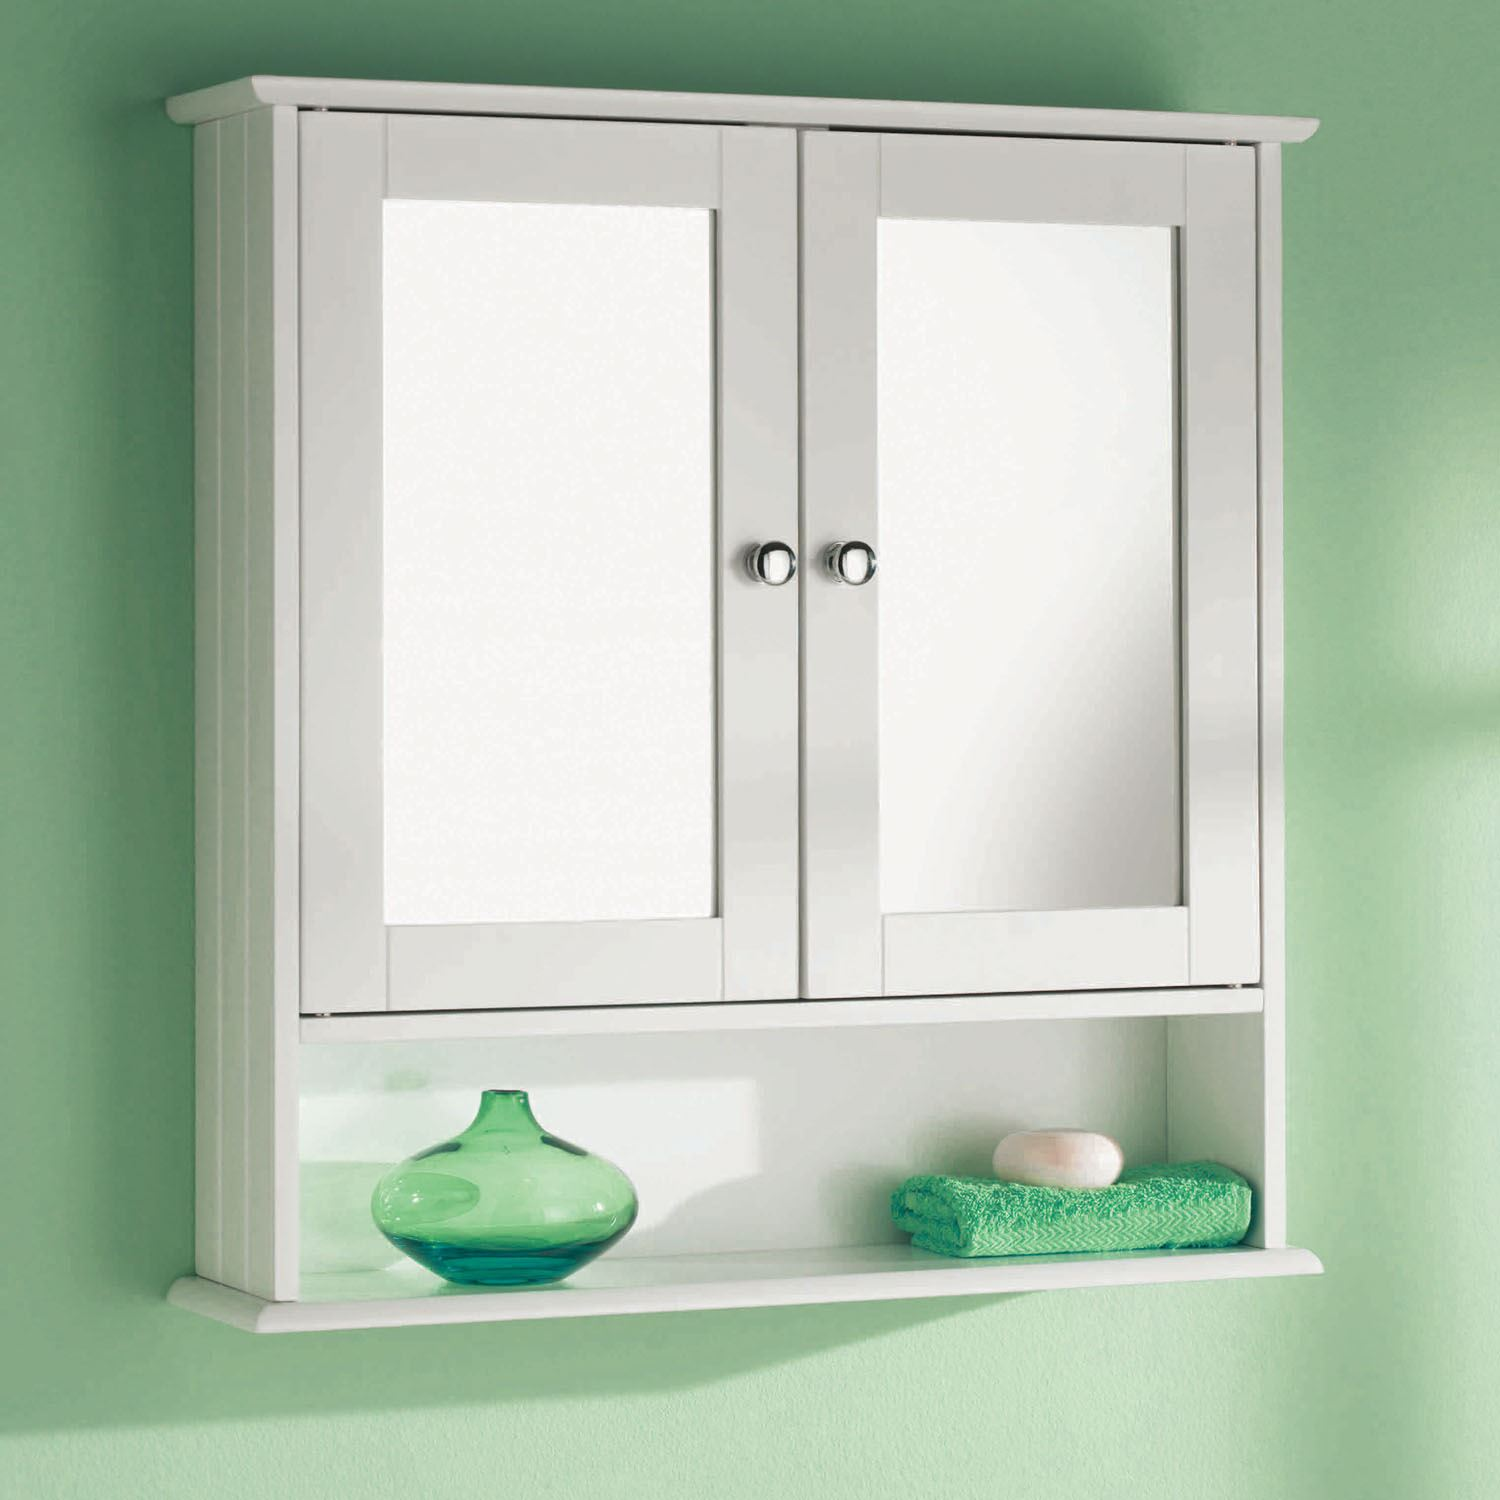 Bathroom Cabinet Mirror Doors White Wooden Double Mirror Door Indoor Wall Mountable